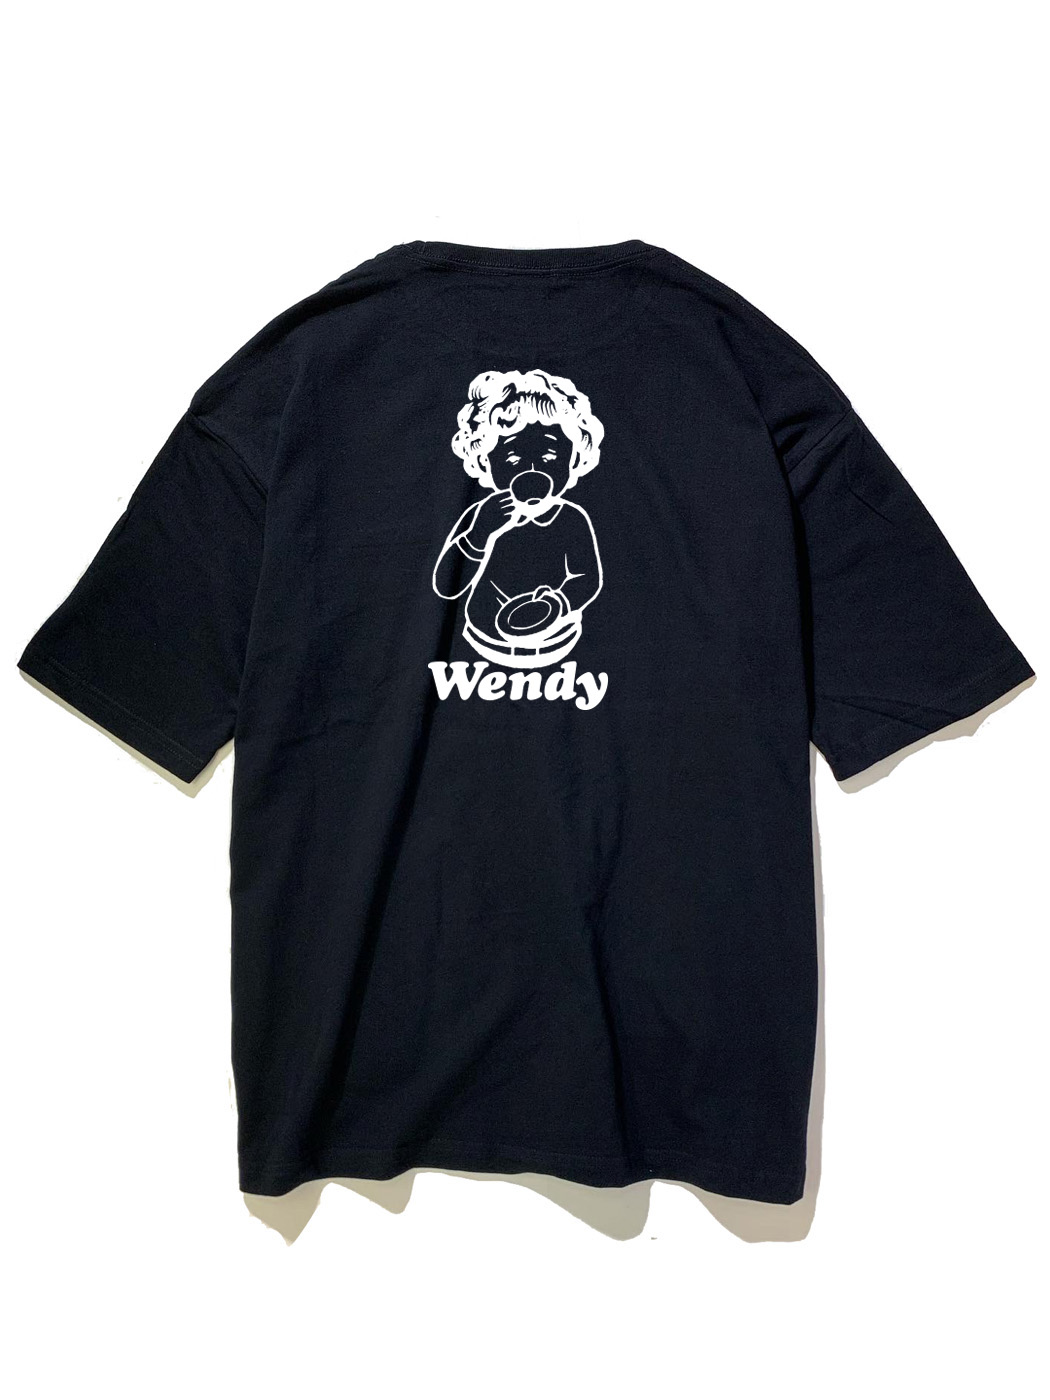 画像1: Wendy (ウェンディ) COFFEE GIRL BIG S/S POCKET TEE / -BLK- (1)